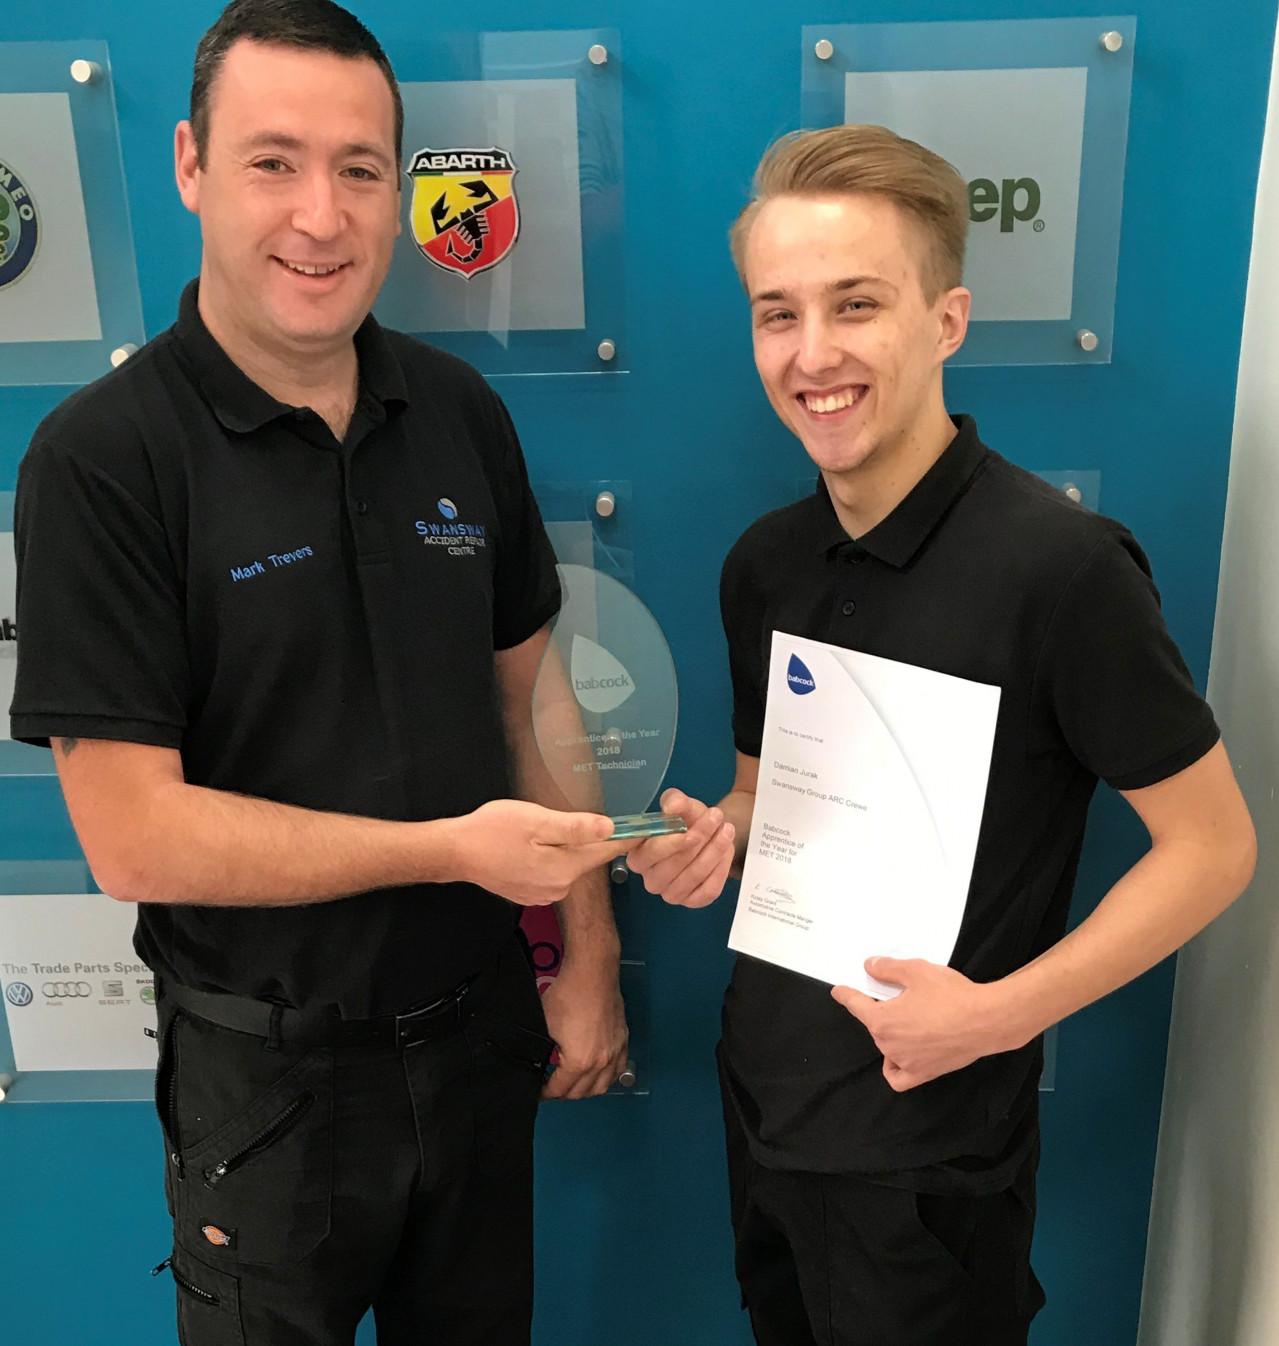 VW Apprentice of the Year Award for Damian